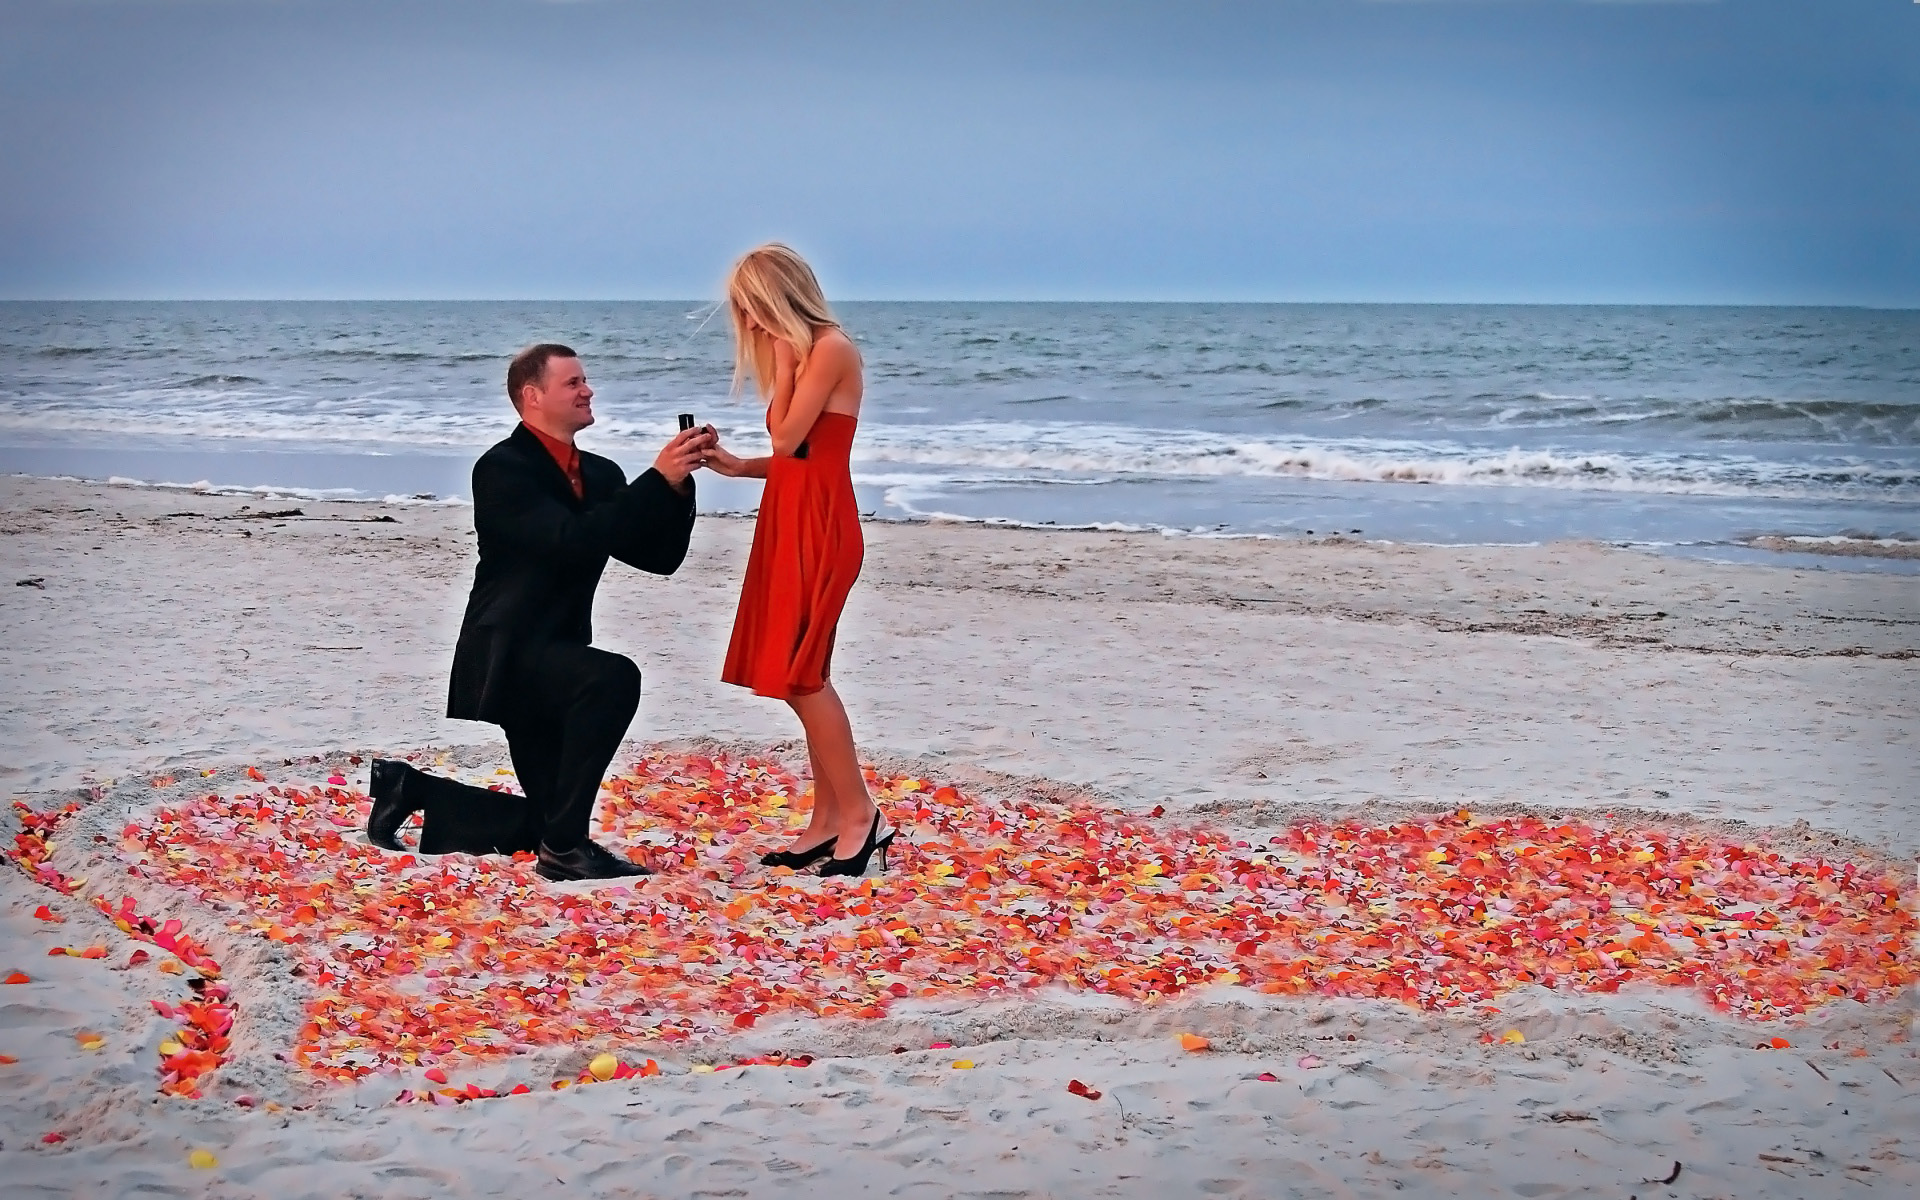 happy propose day 2016 images